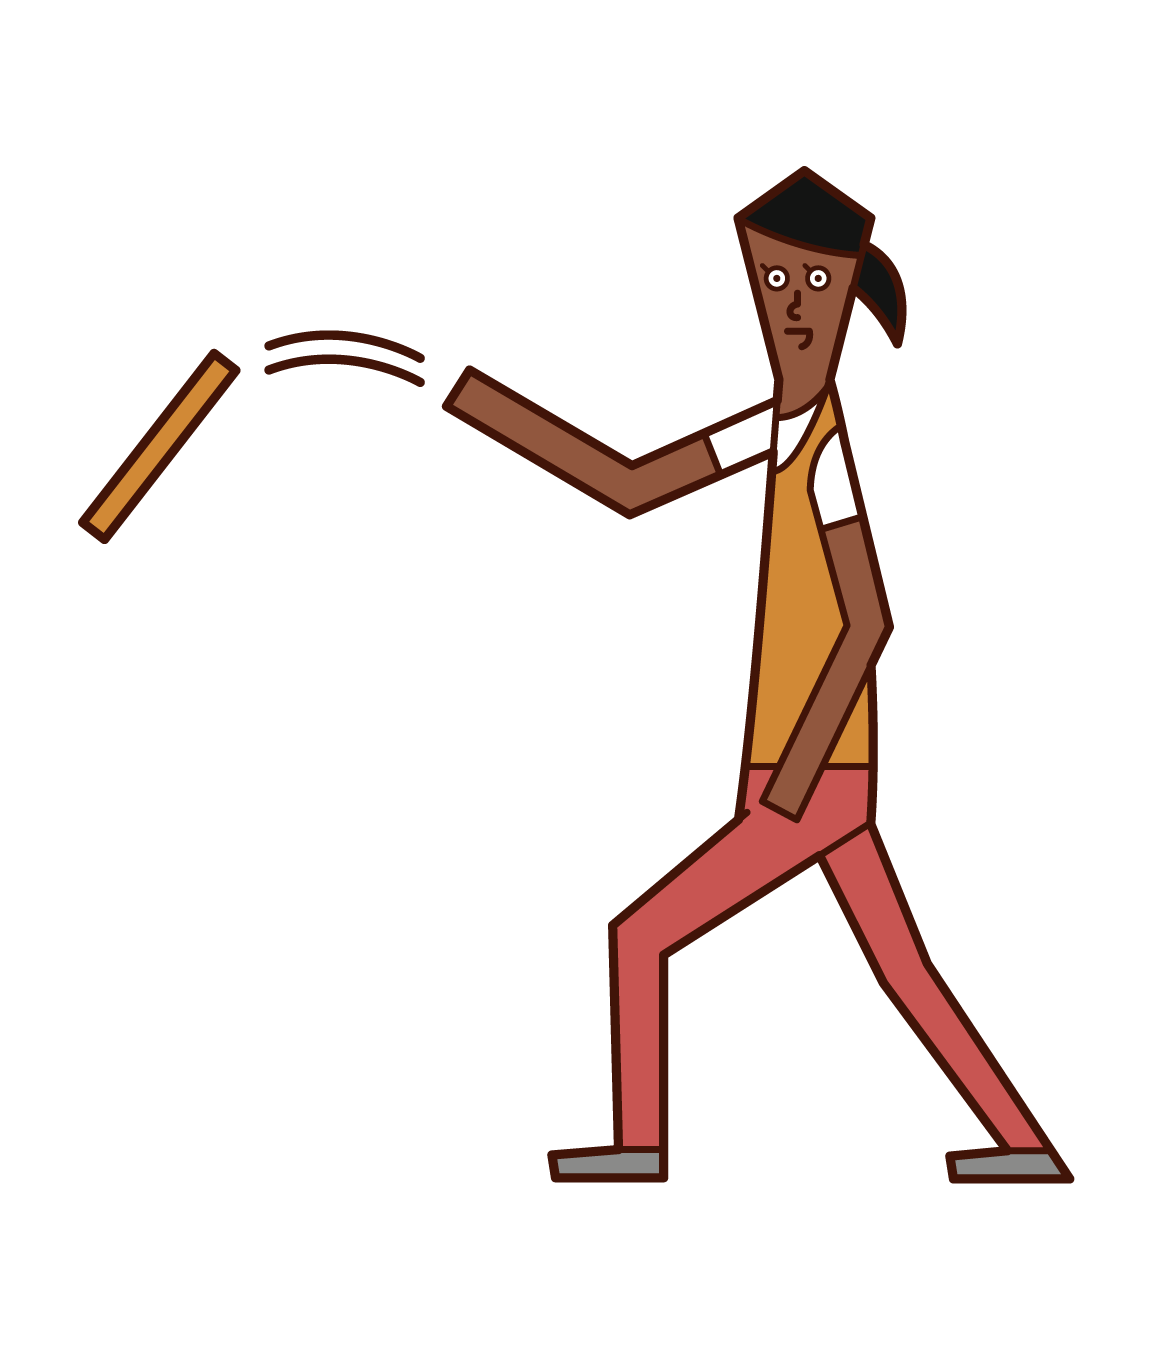 Illustration of a person (woman) throwing a rod